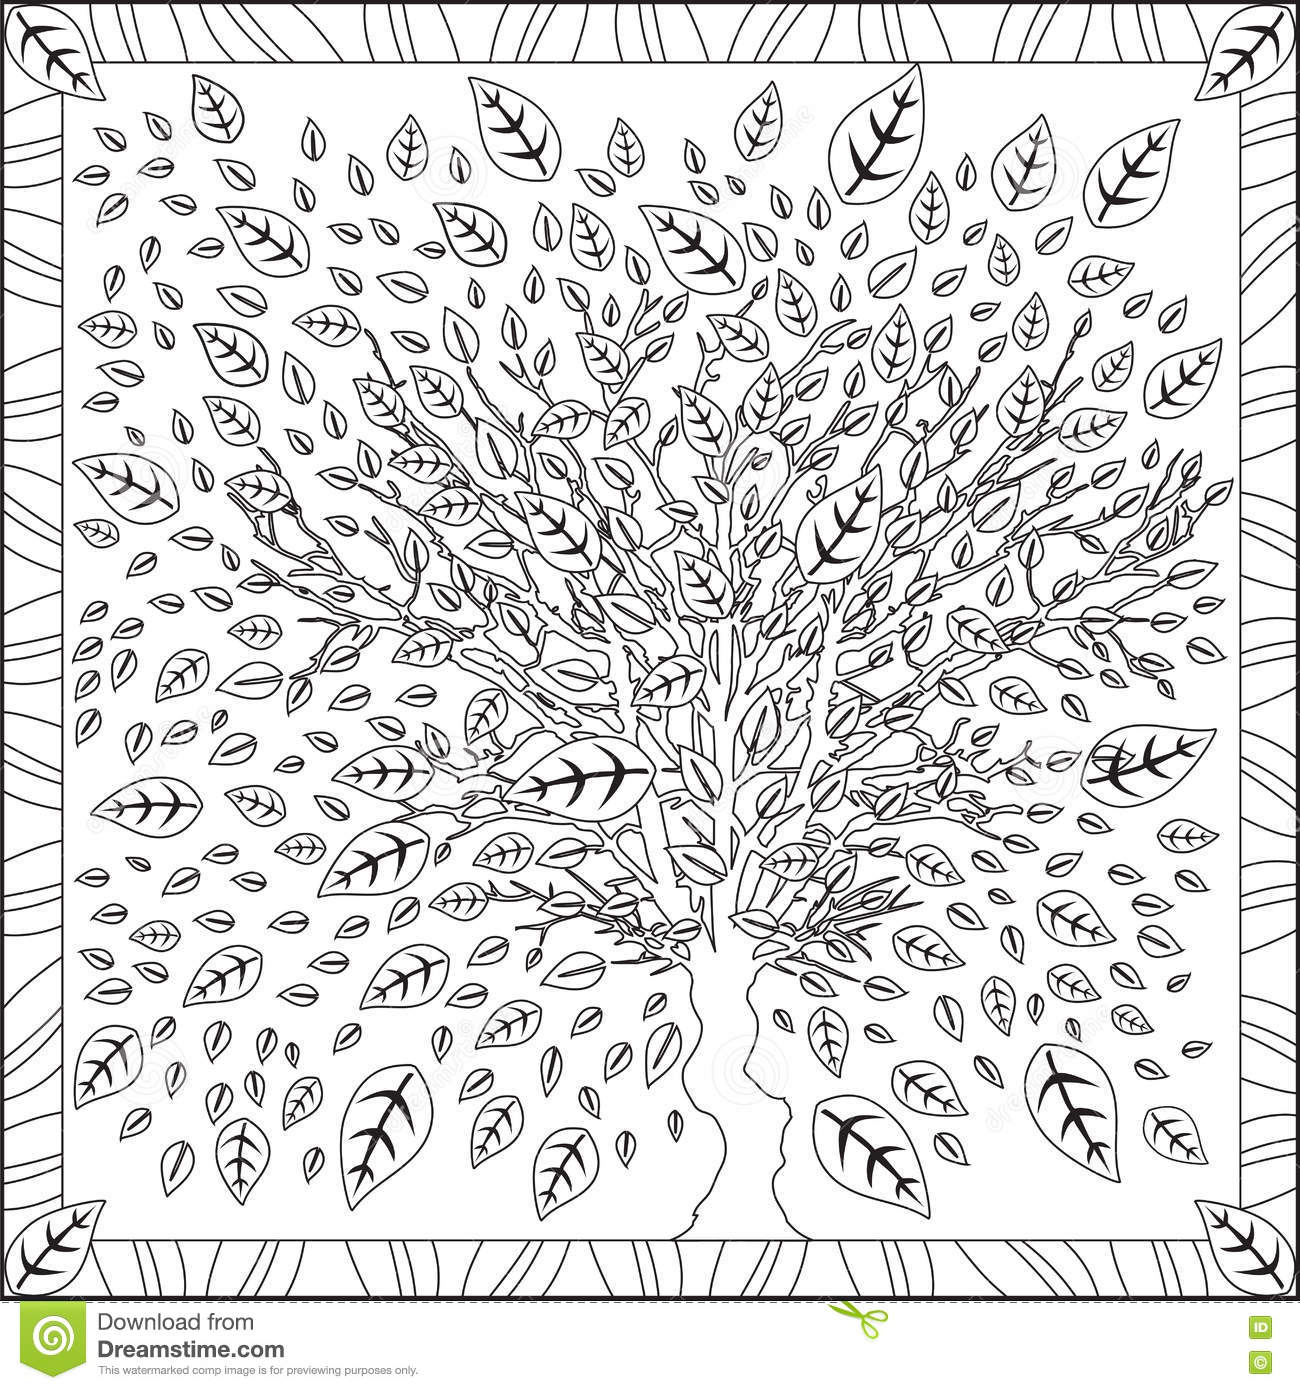 Coloring pages for adults tree - Coloring Page Book For Adults Square Format Tree Leaves Foliage Design Vector Illustration Stock Vector